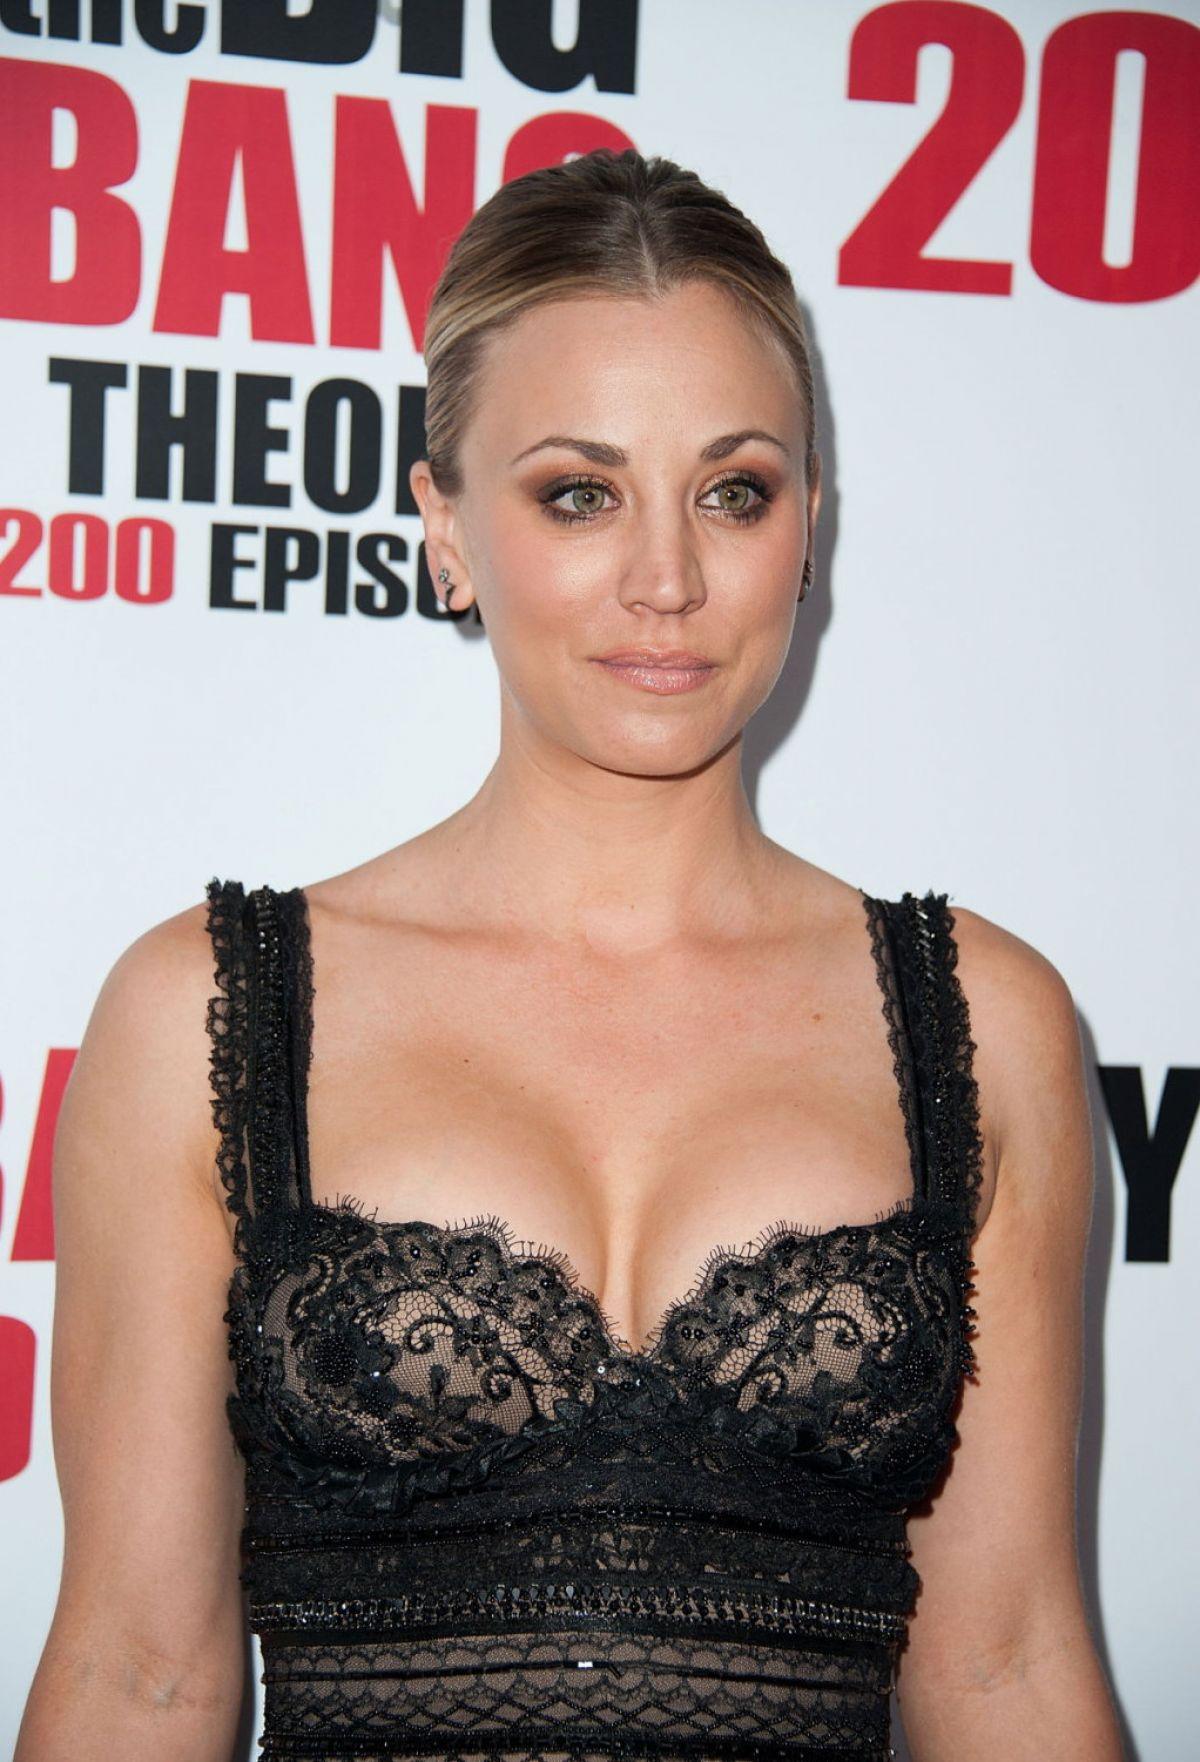 KALEY CUOCO at Tthe Big Bang Theory 200th Episode Celebration in Los Angeles 02/20/2016